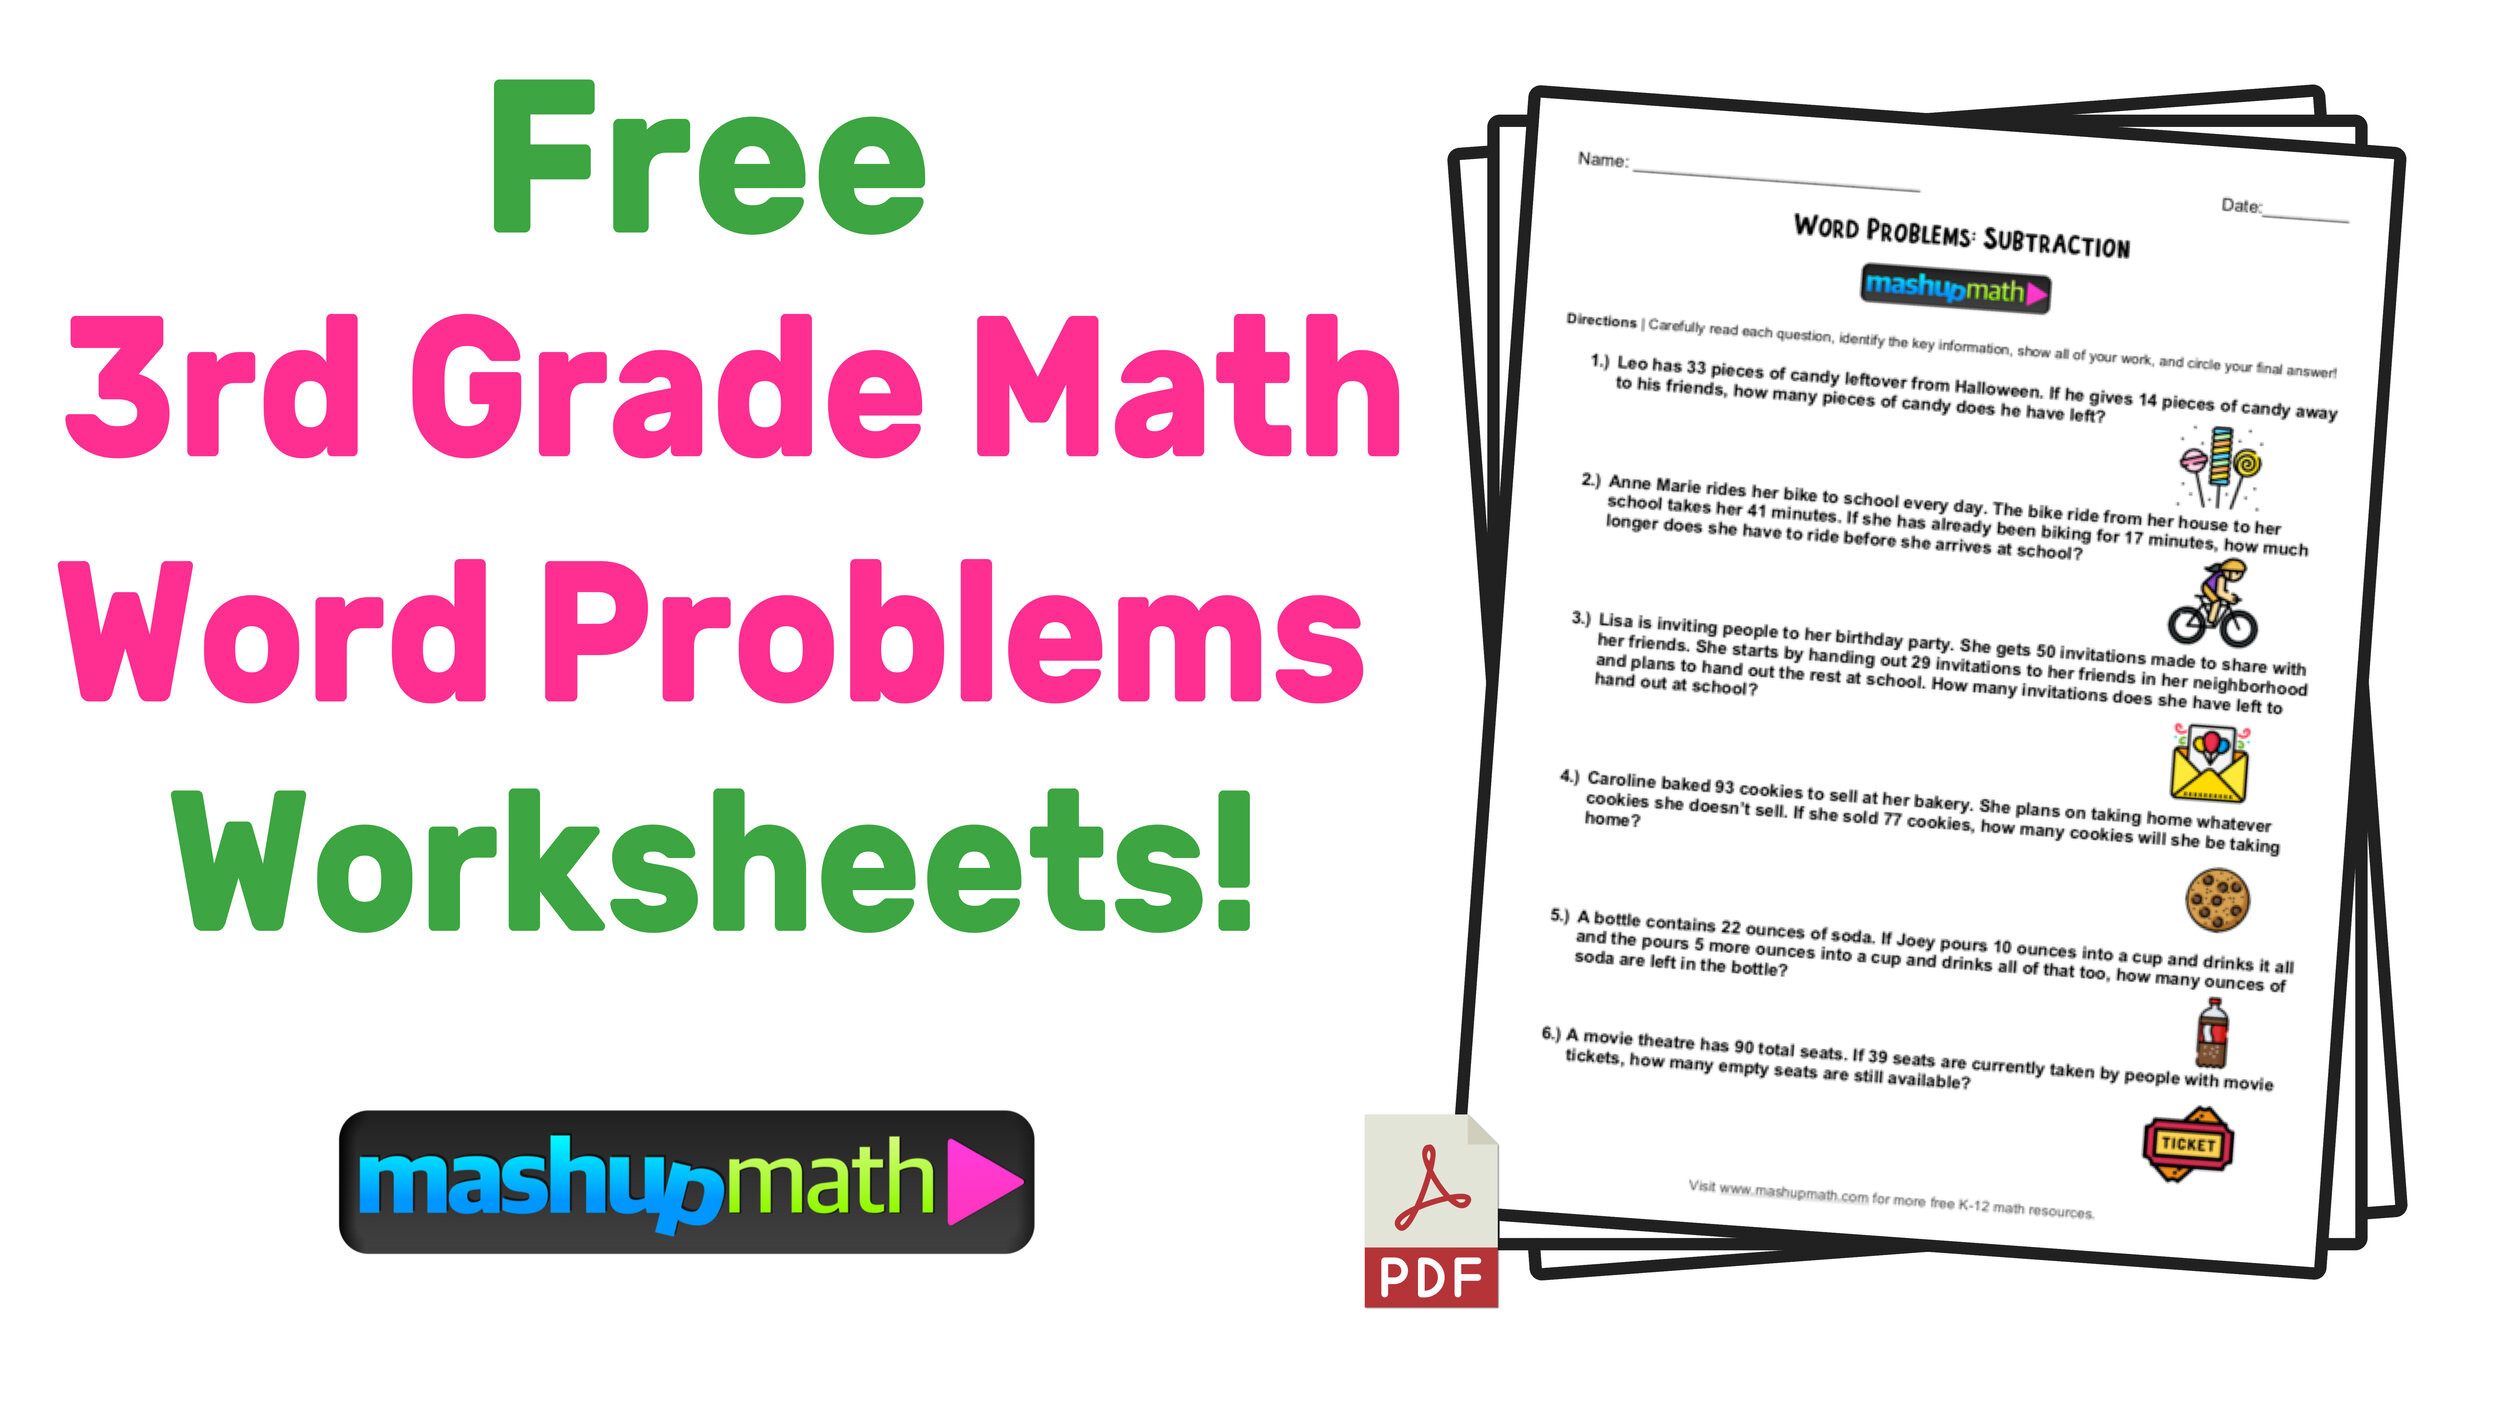 Third Grade Math Minutes Pdf 3rd Grade Math Word Problems Free Worksheets with Answers